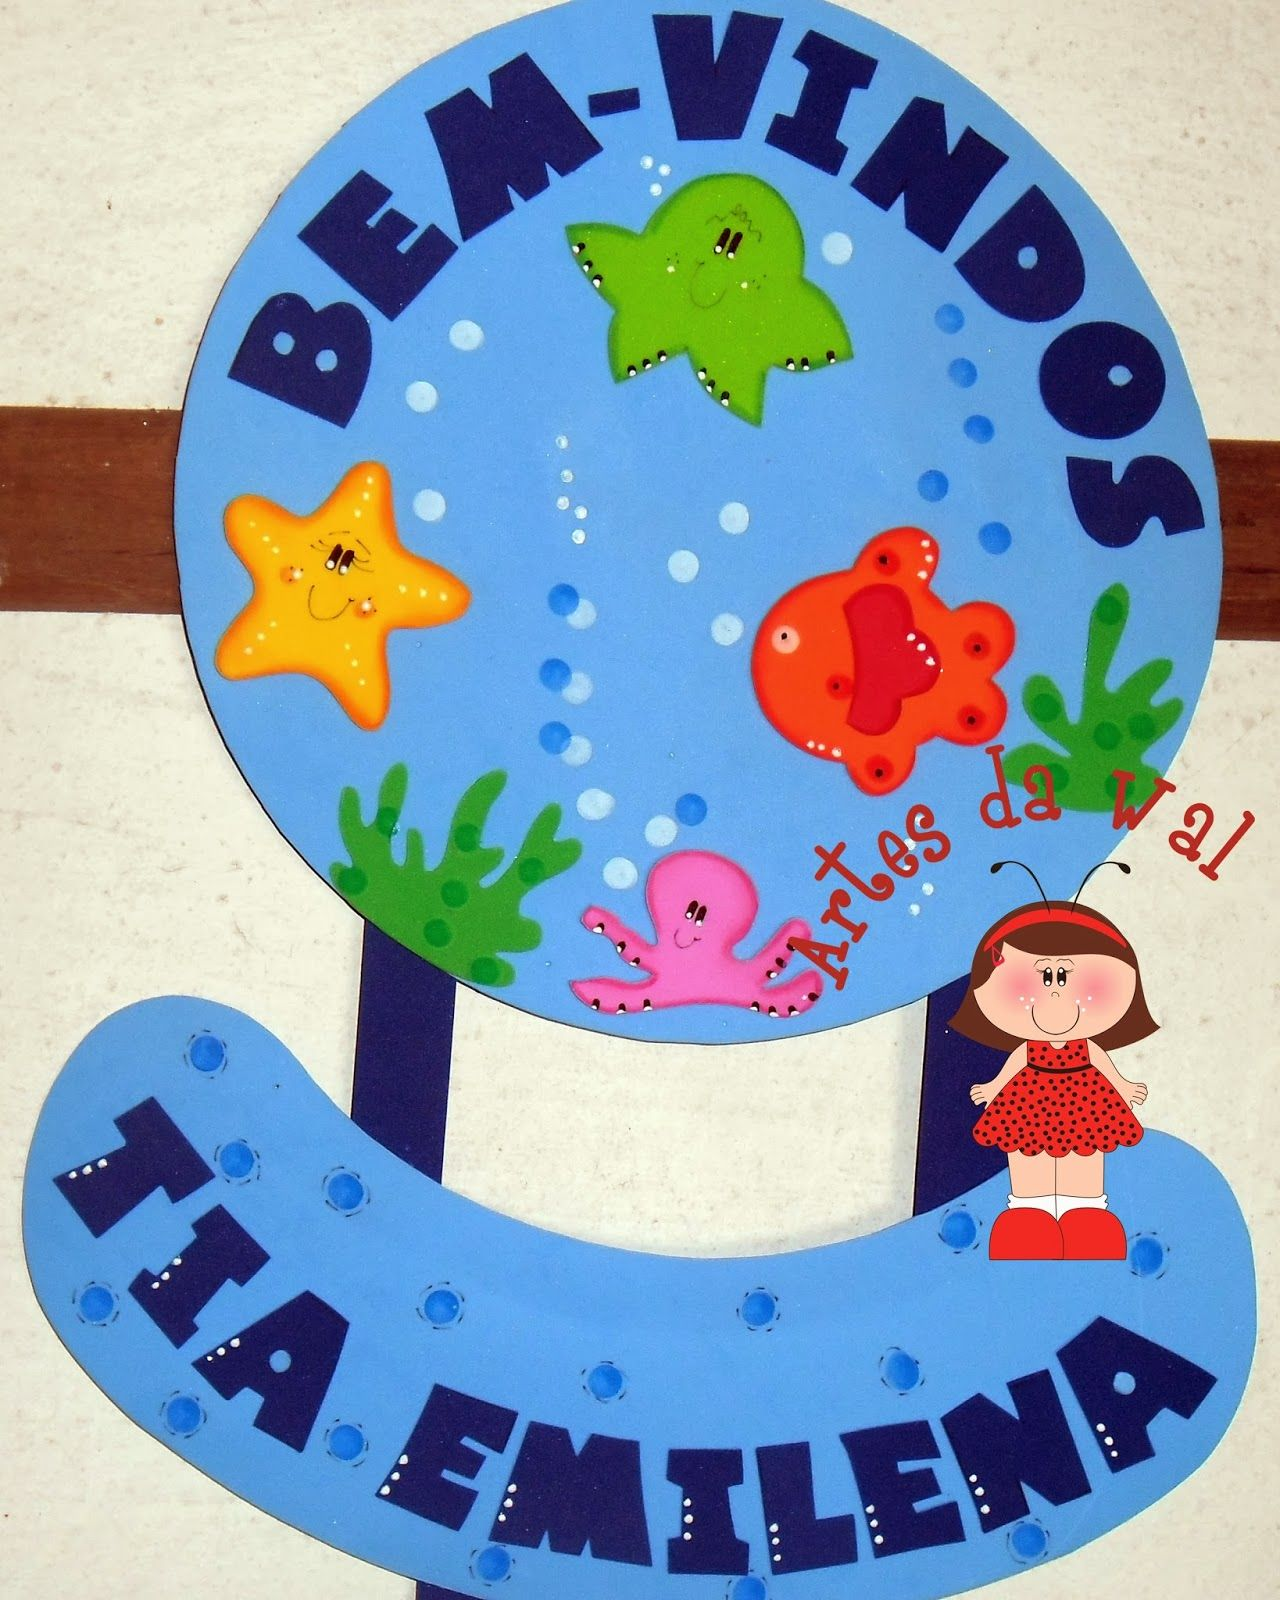 Decora O Sala De Aula Tema Fundo Do Mar Janelinha Do Tempo  -> Decoracao Sala De Aula Ensino Fundamental